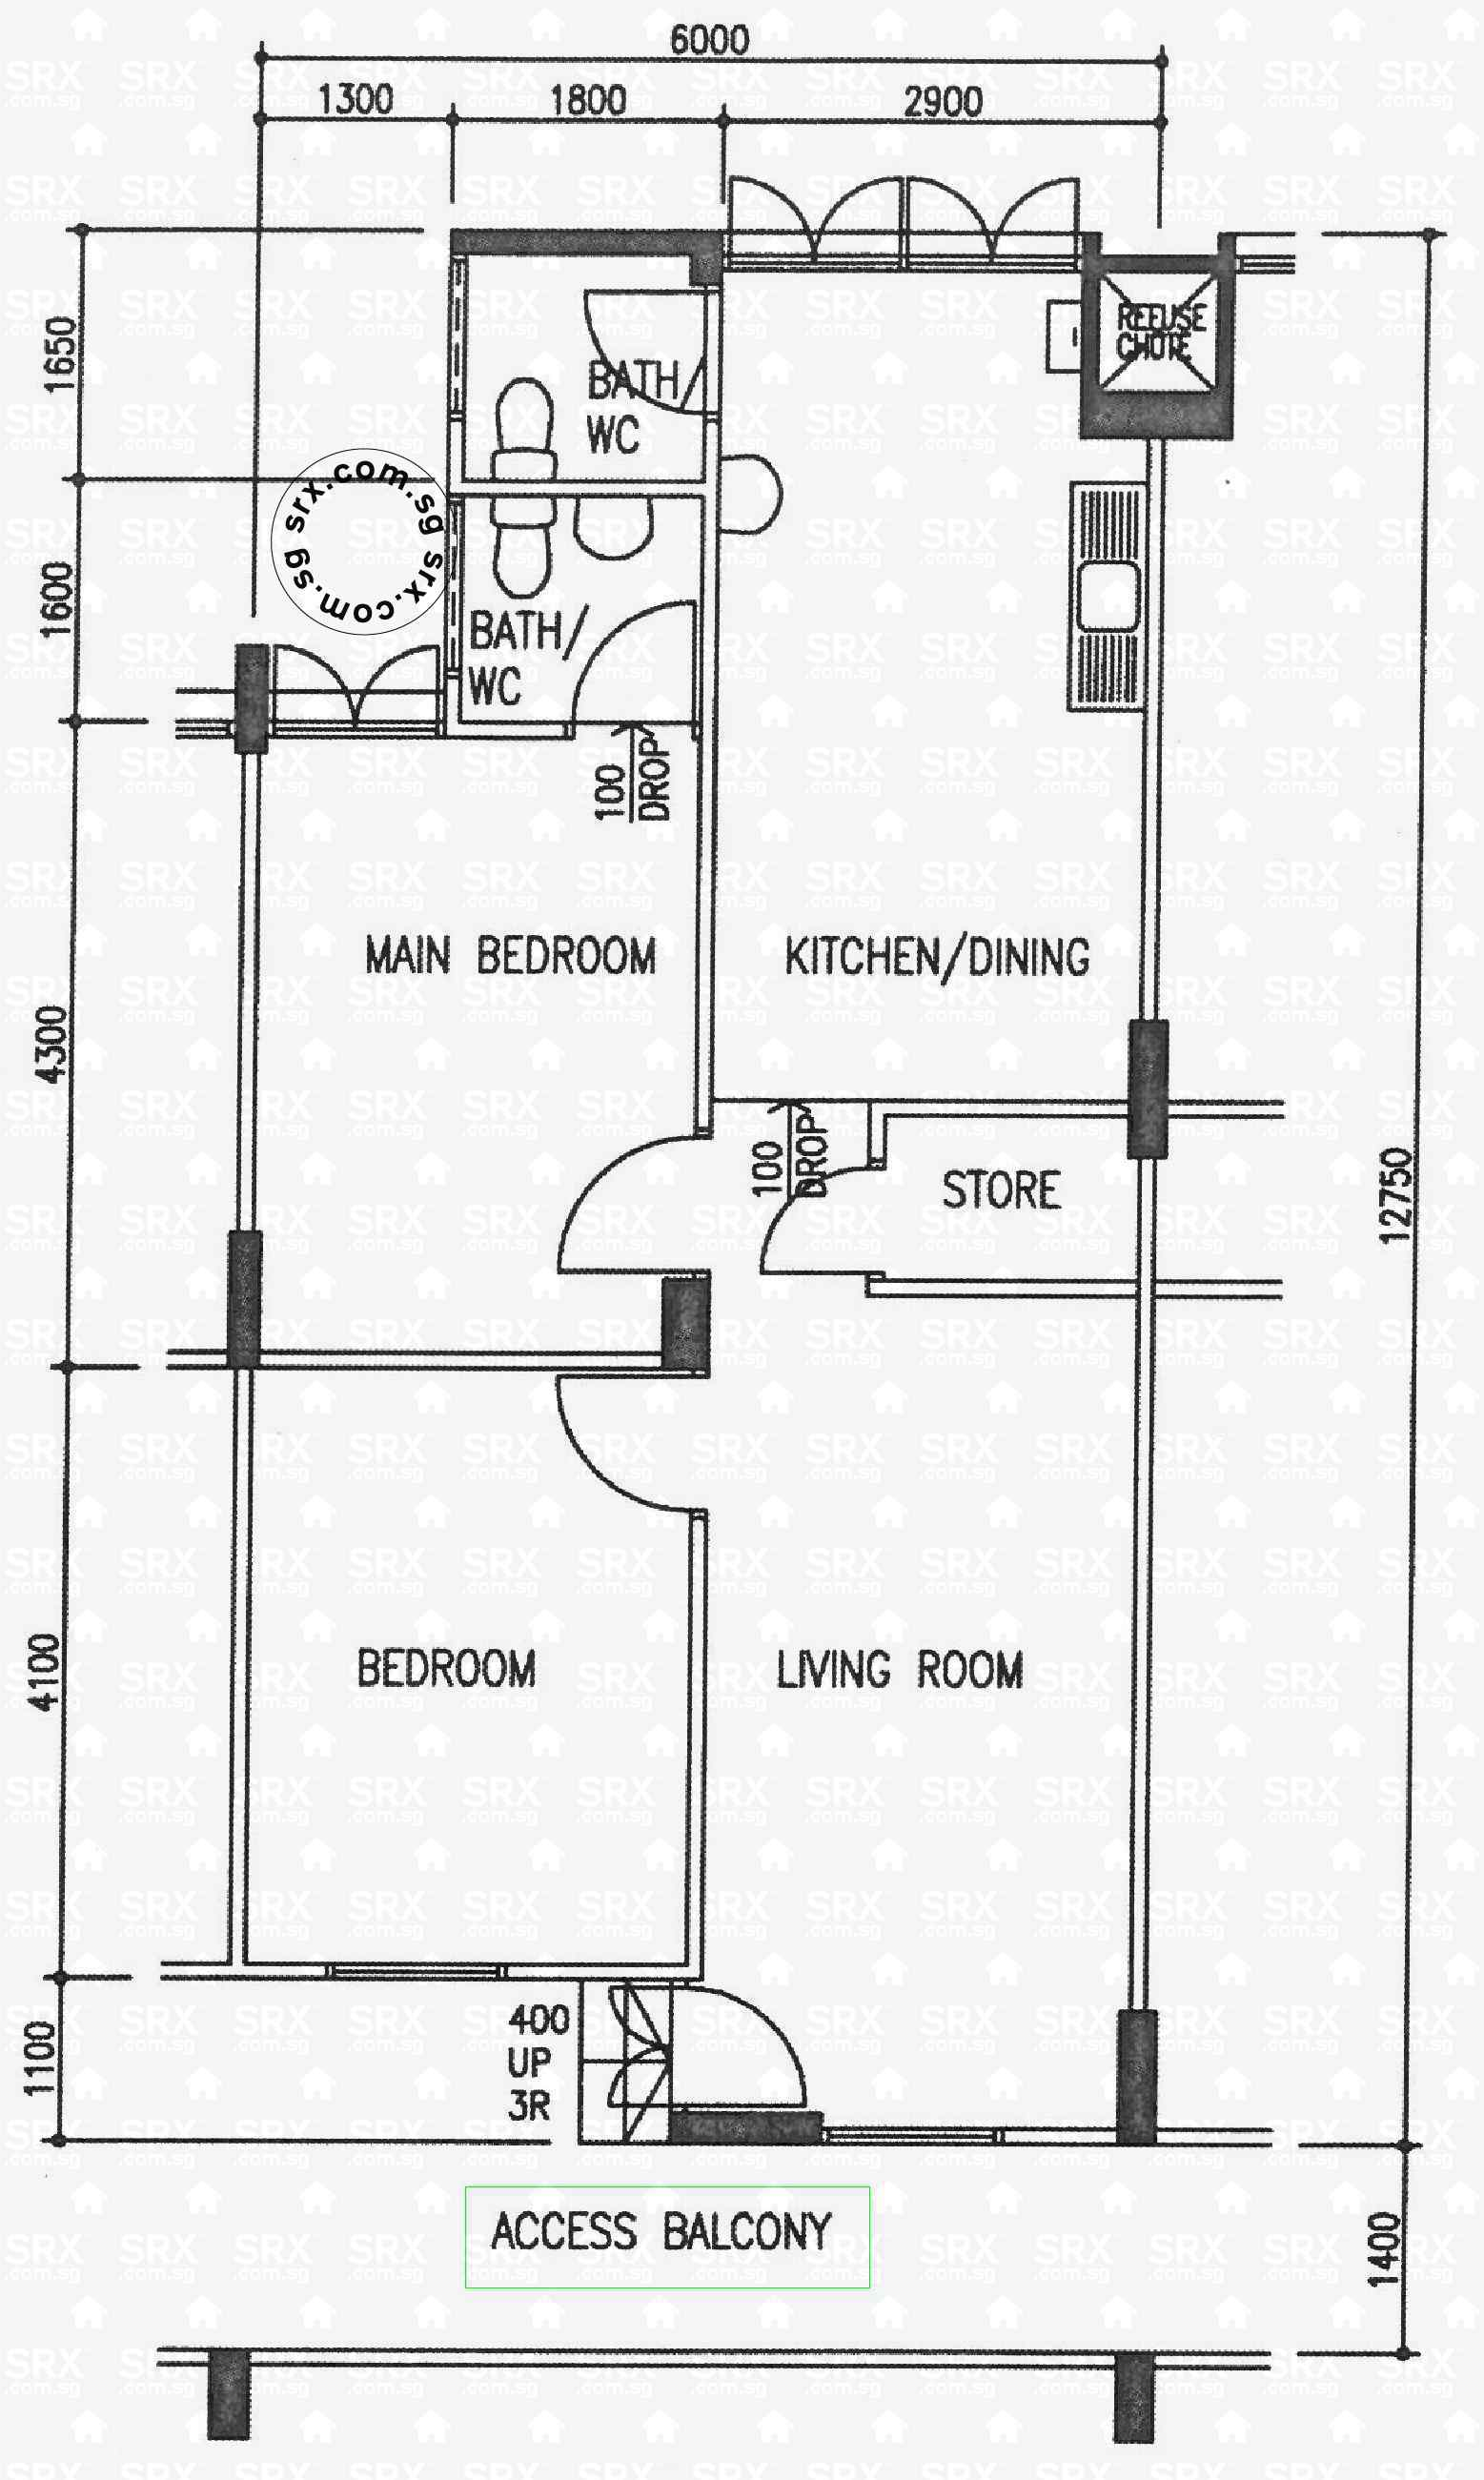 Floor Plans For Ghim Moh Link S Hdb Details Srx Property - purchase ...